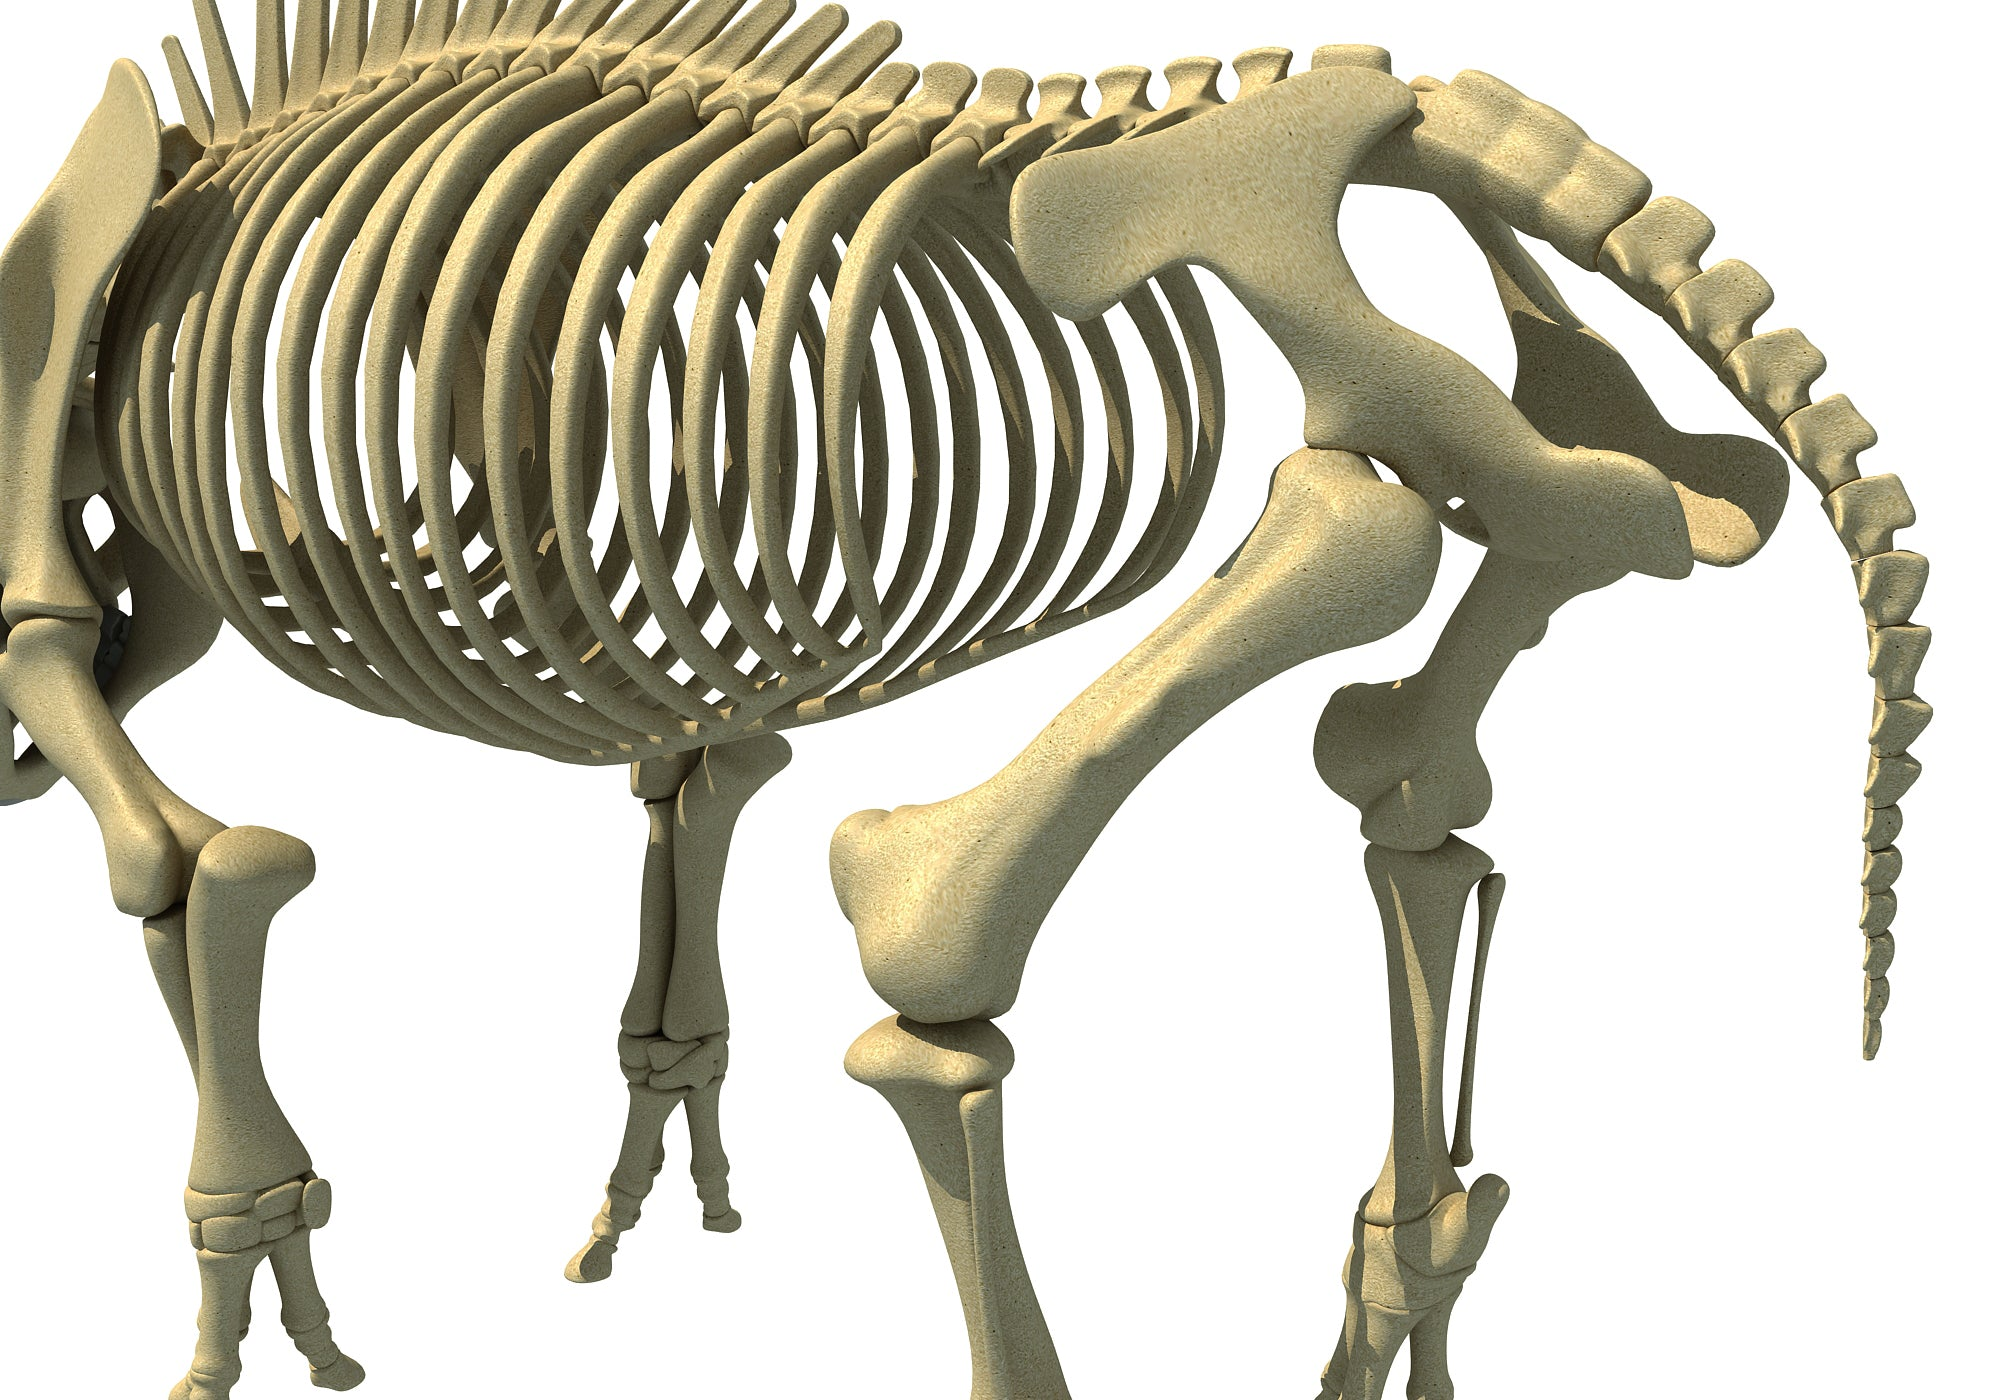 Rhino Rhinoceros Skeleton